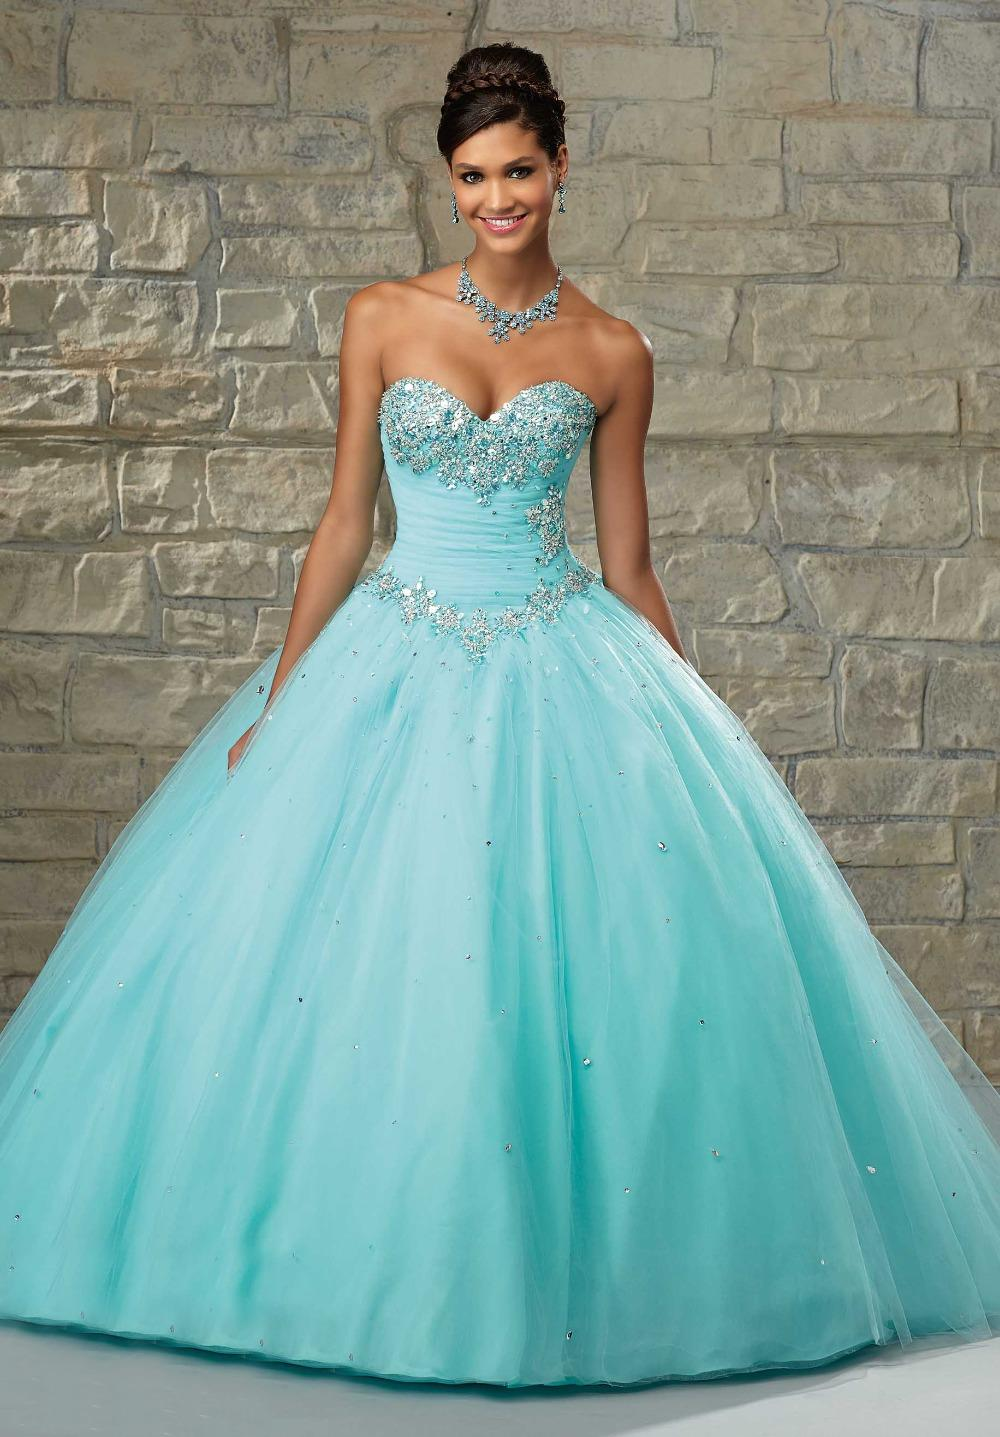 Compare Prices on Baby Blue Prom Dresses- Online Shopping/Buy Low ...